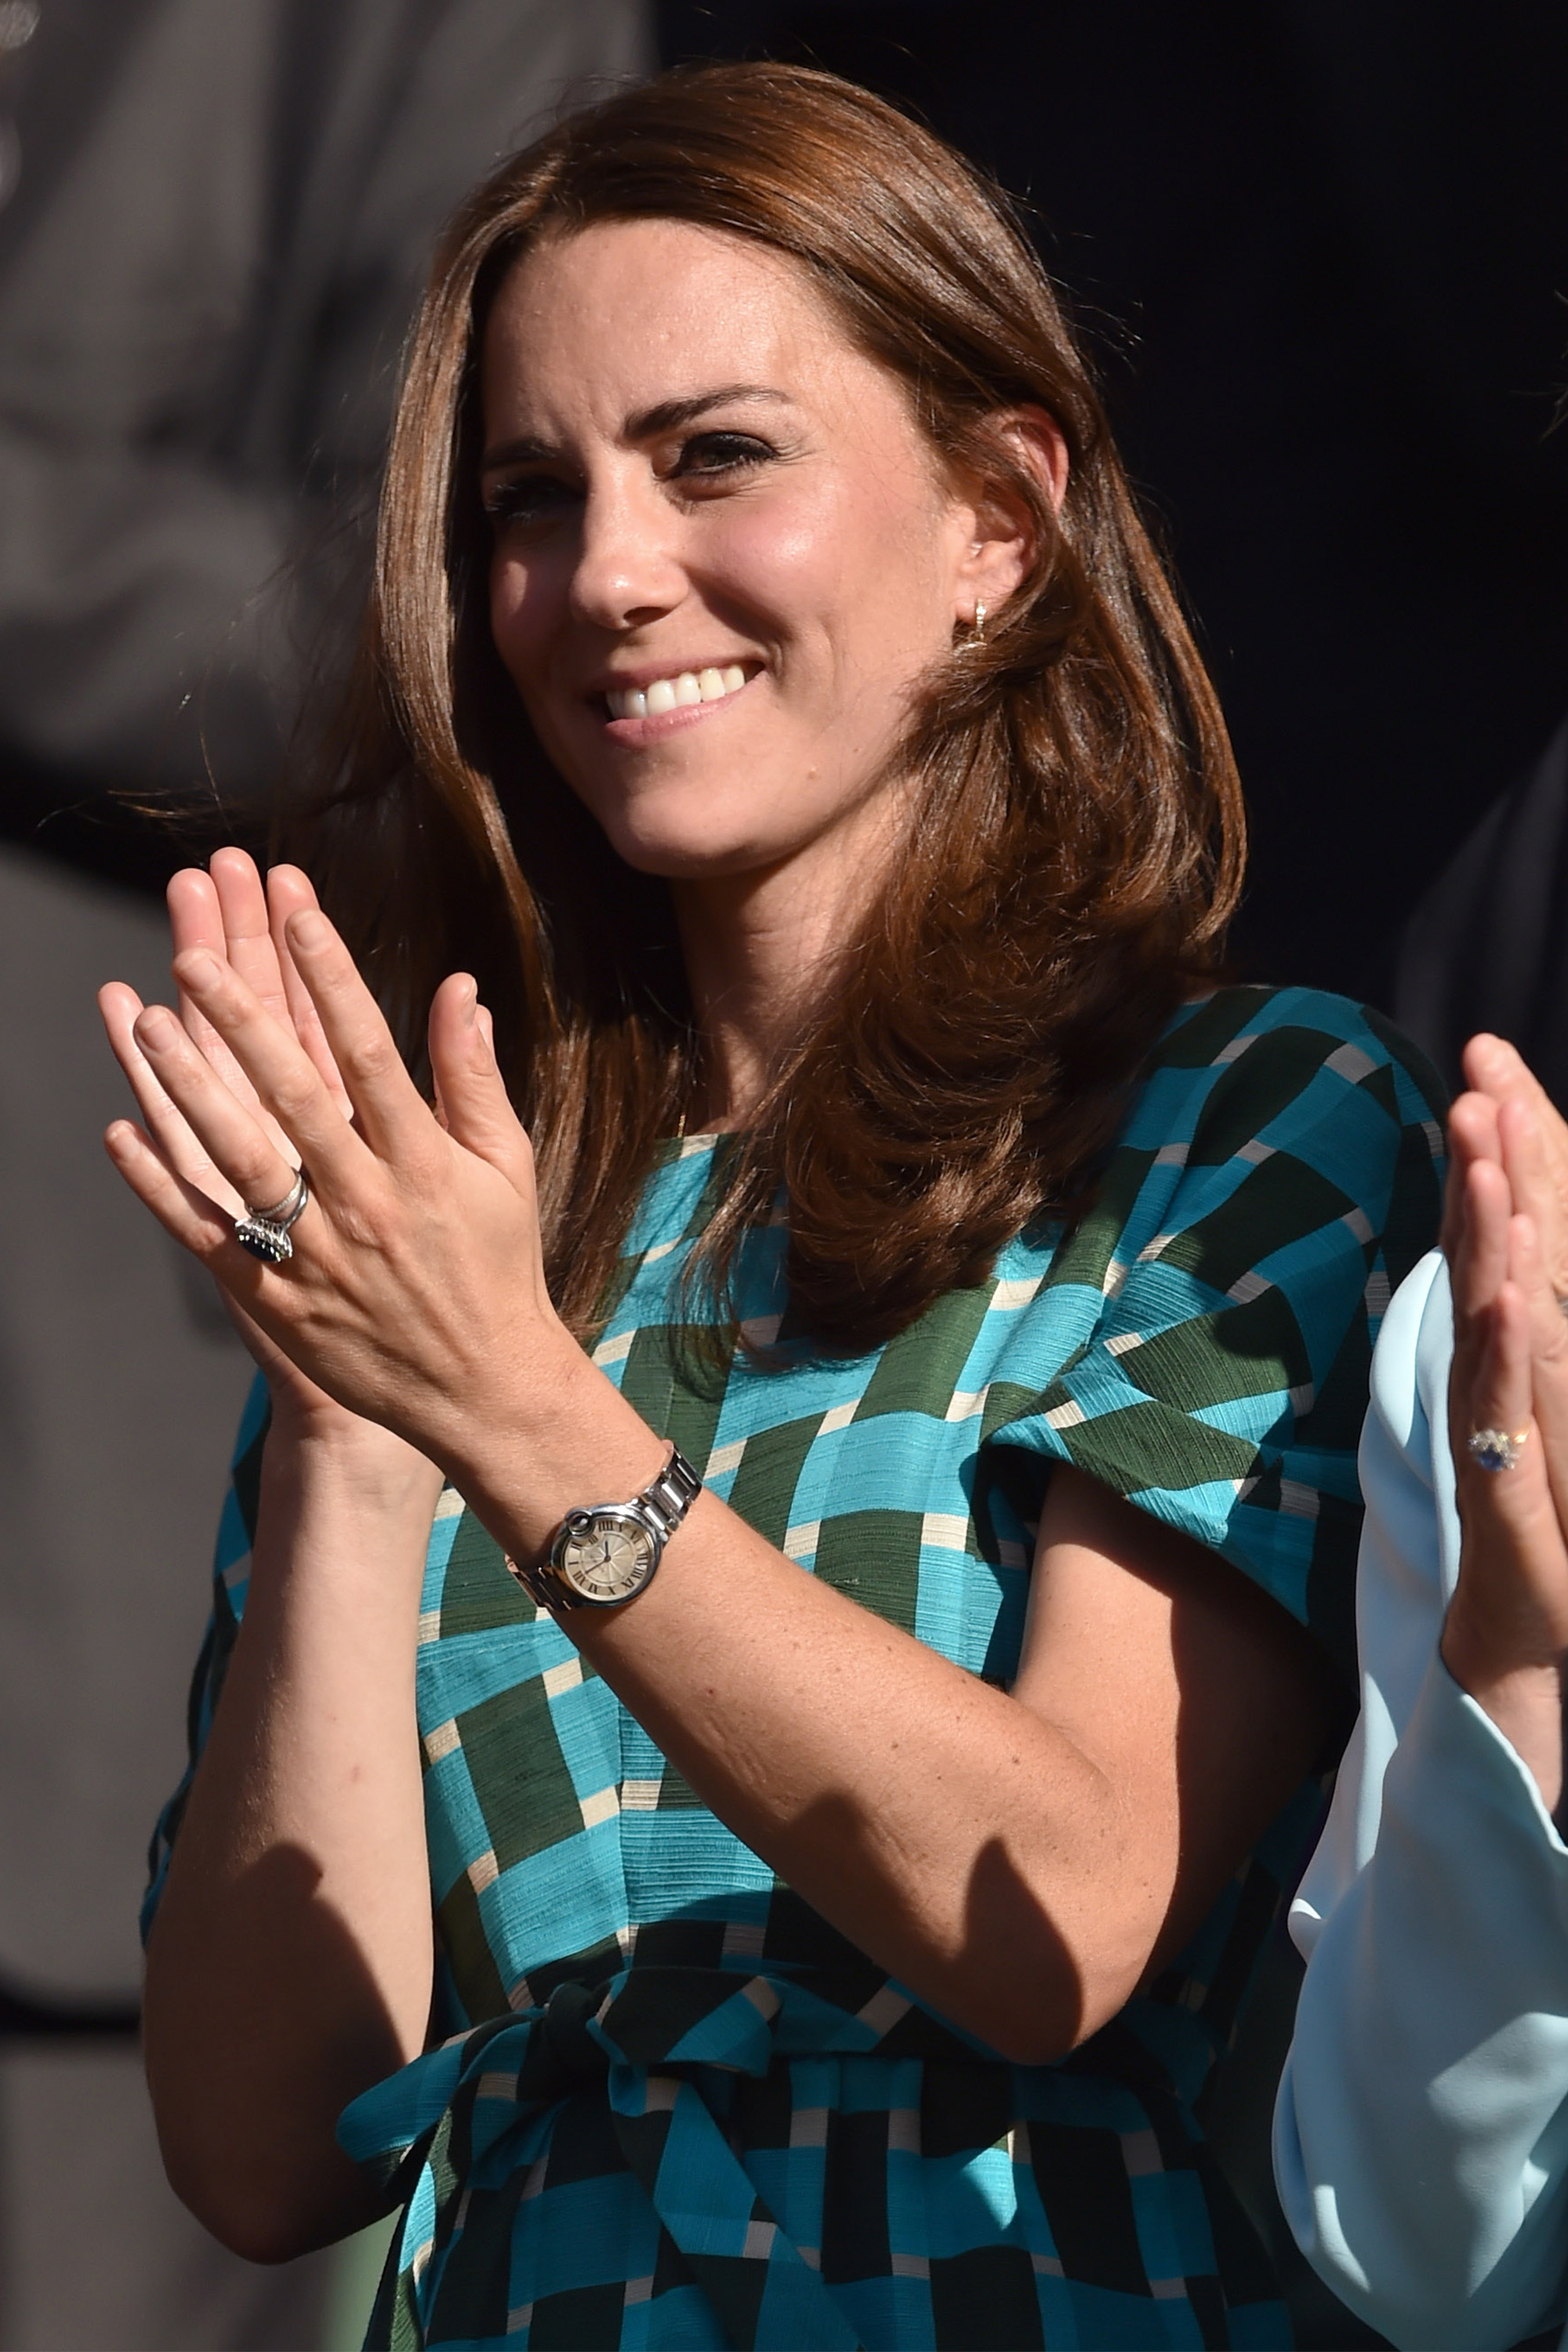 Like the Duchess of Cambridge's courtside style? You can expect a whole lot more of it now that the royal is taking over from the Queen as the patron of the All England Lawn Tennis & Croquet Club, which hosts Wimbledon. <br><br>The appointment has been made because the Queen wishes to lighten her workload ahead of her 90th birthday. An avid tennis fan, Kate is a regular in the royal box, which she never fails to enter without her trademark blowdry. <br><br>To celebrate, we've rounded up her best Wimbledon hits.